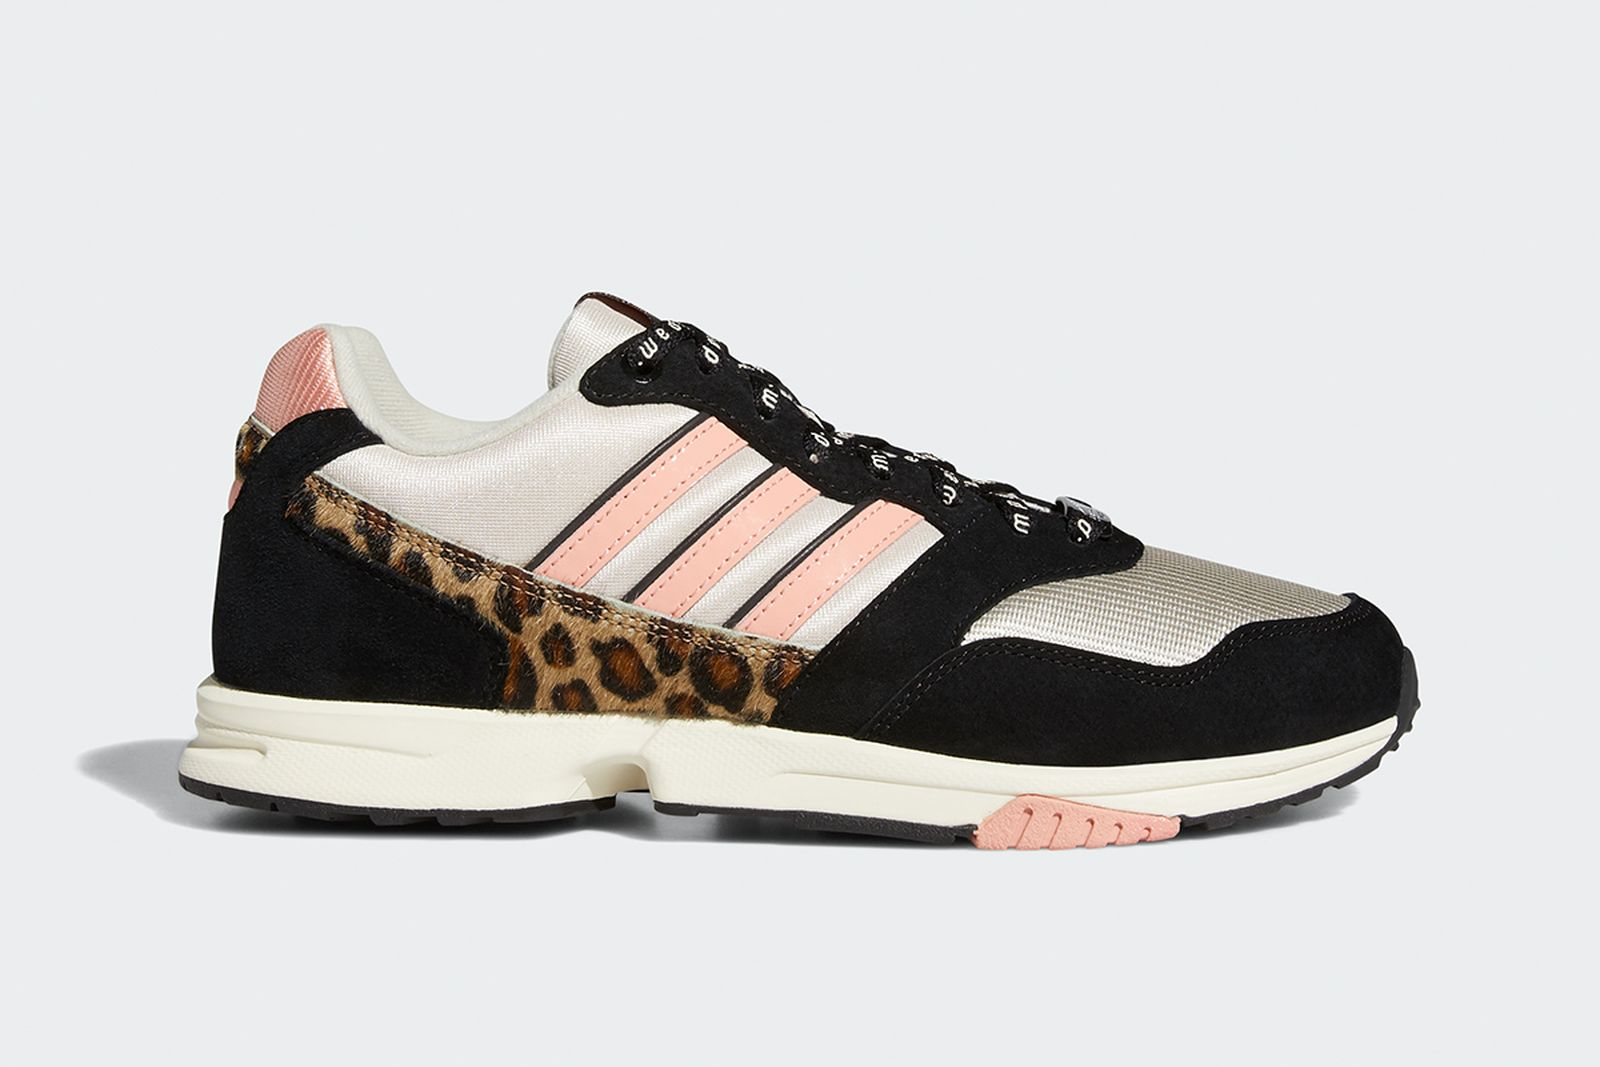 pam-pam-adidas-zx-1000-release-date-price-01